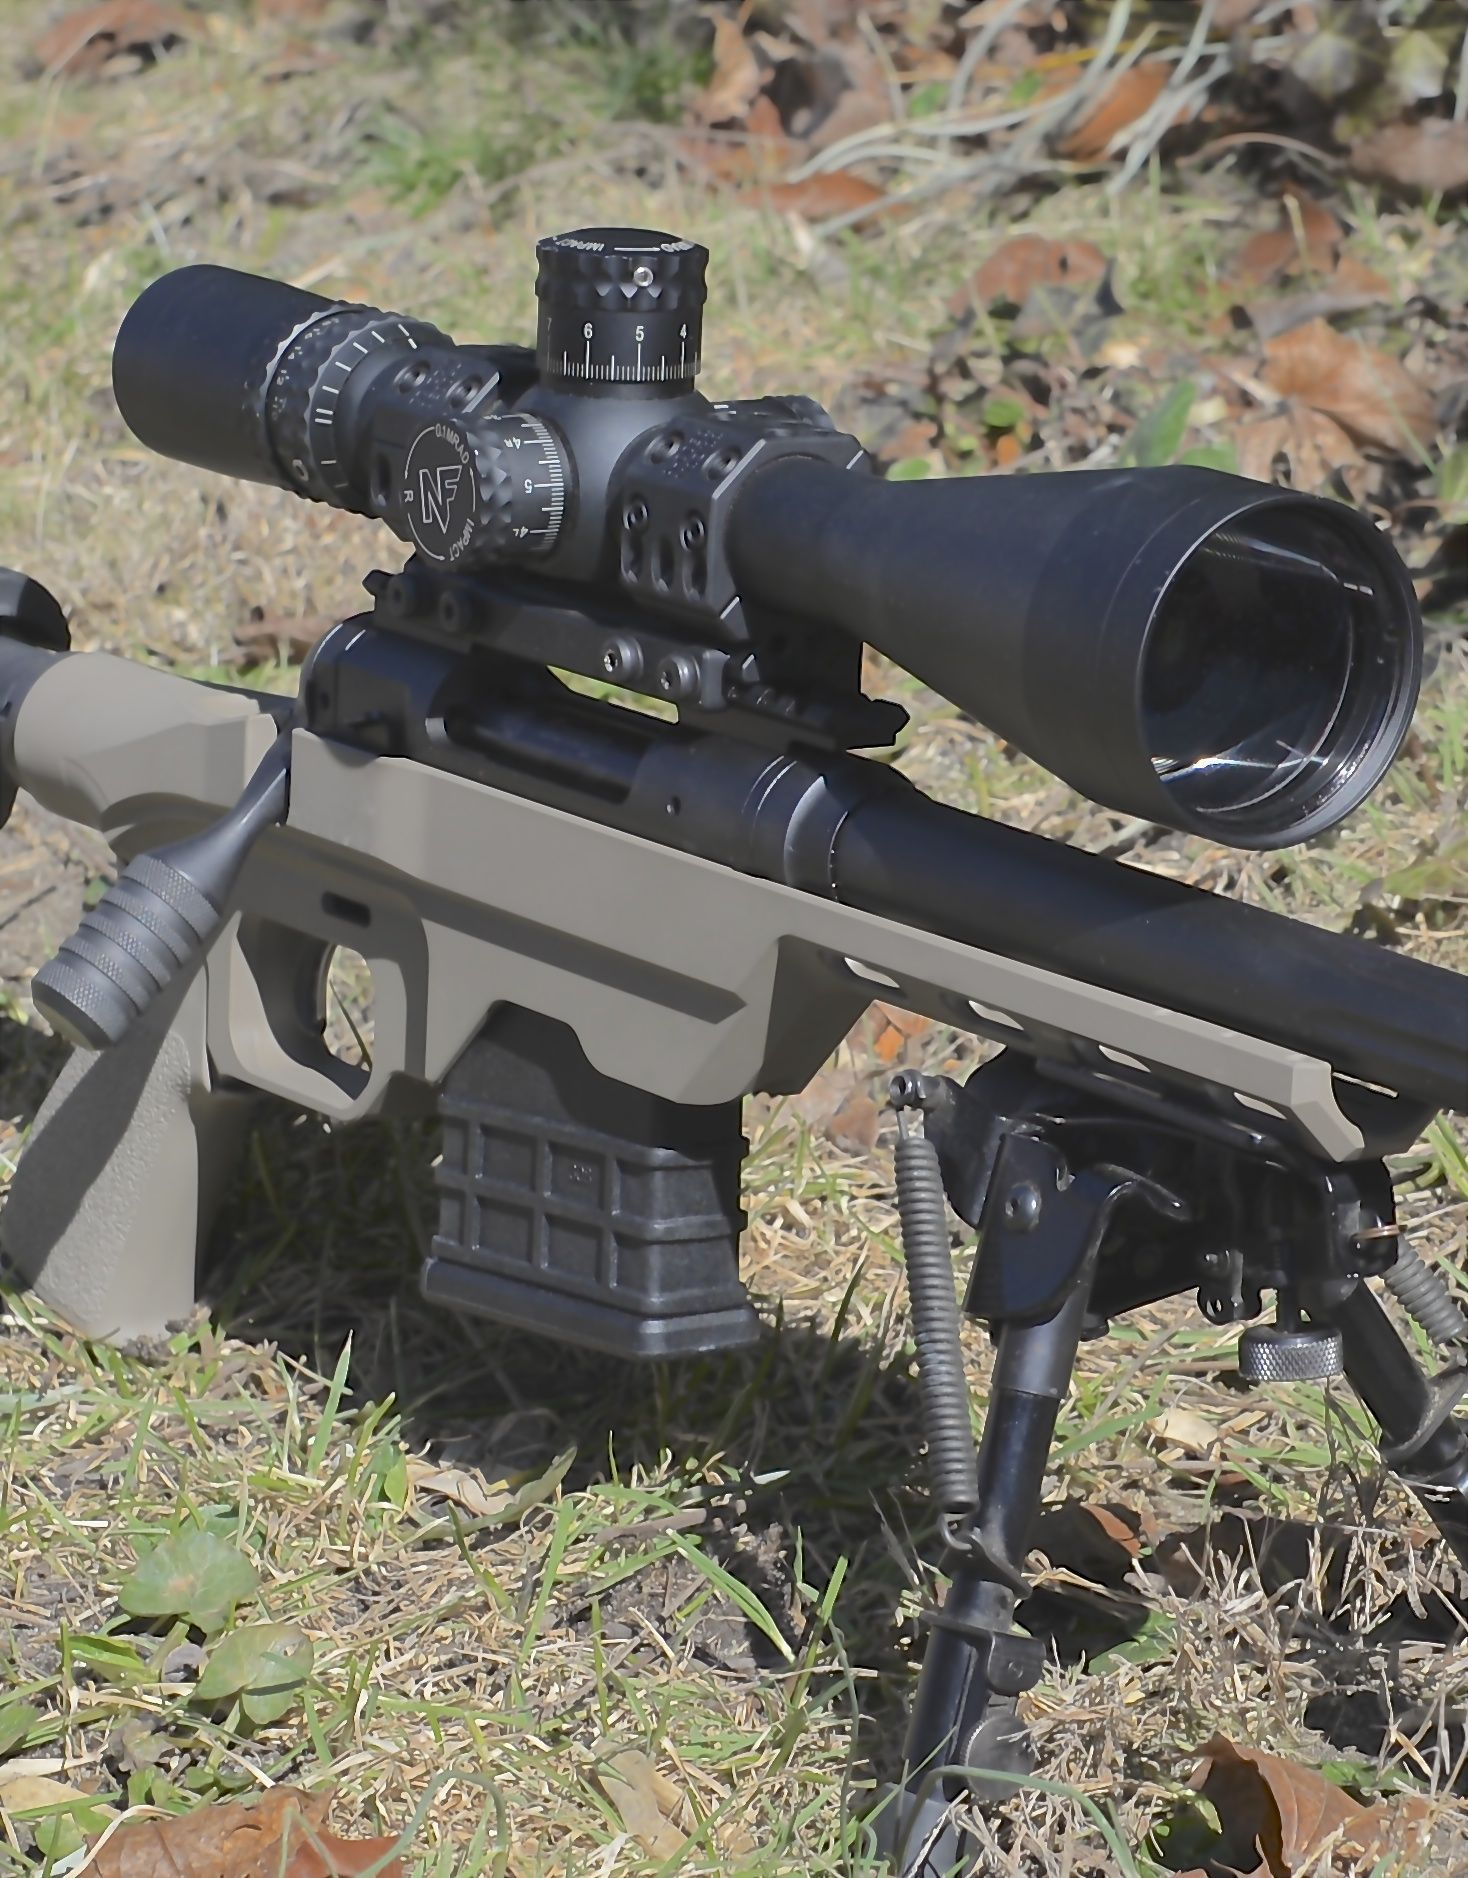 See how RifleShooter com used our LSS Chassis, which